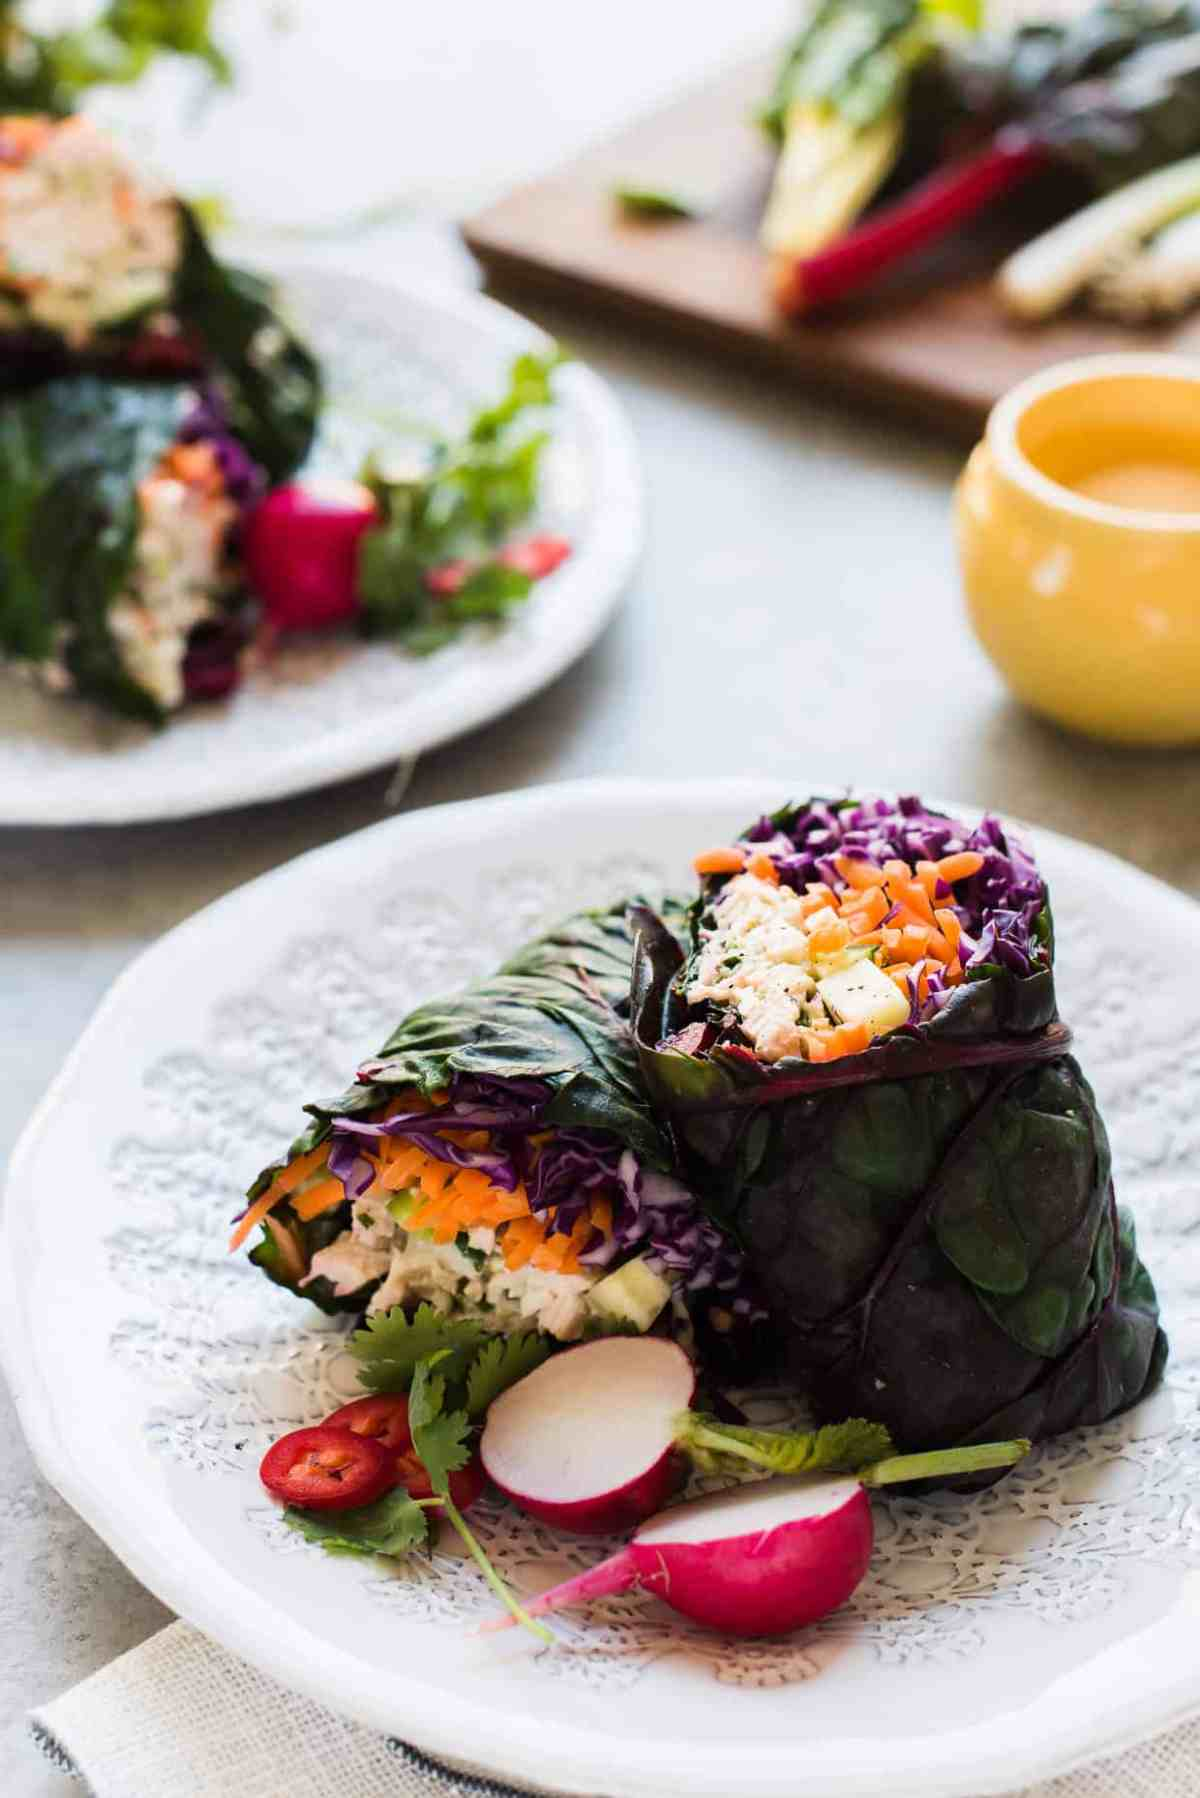 Thai-style chicken salad rainbow chard wraps on a white plate.